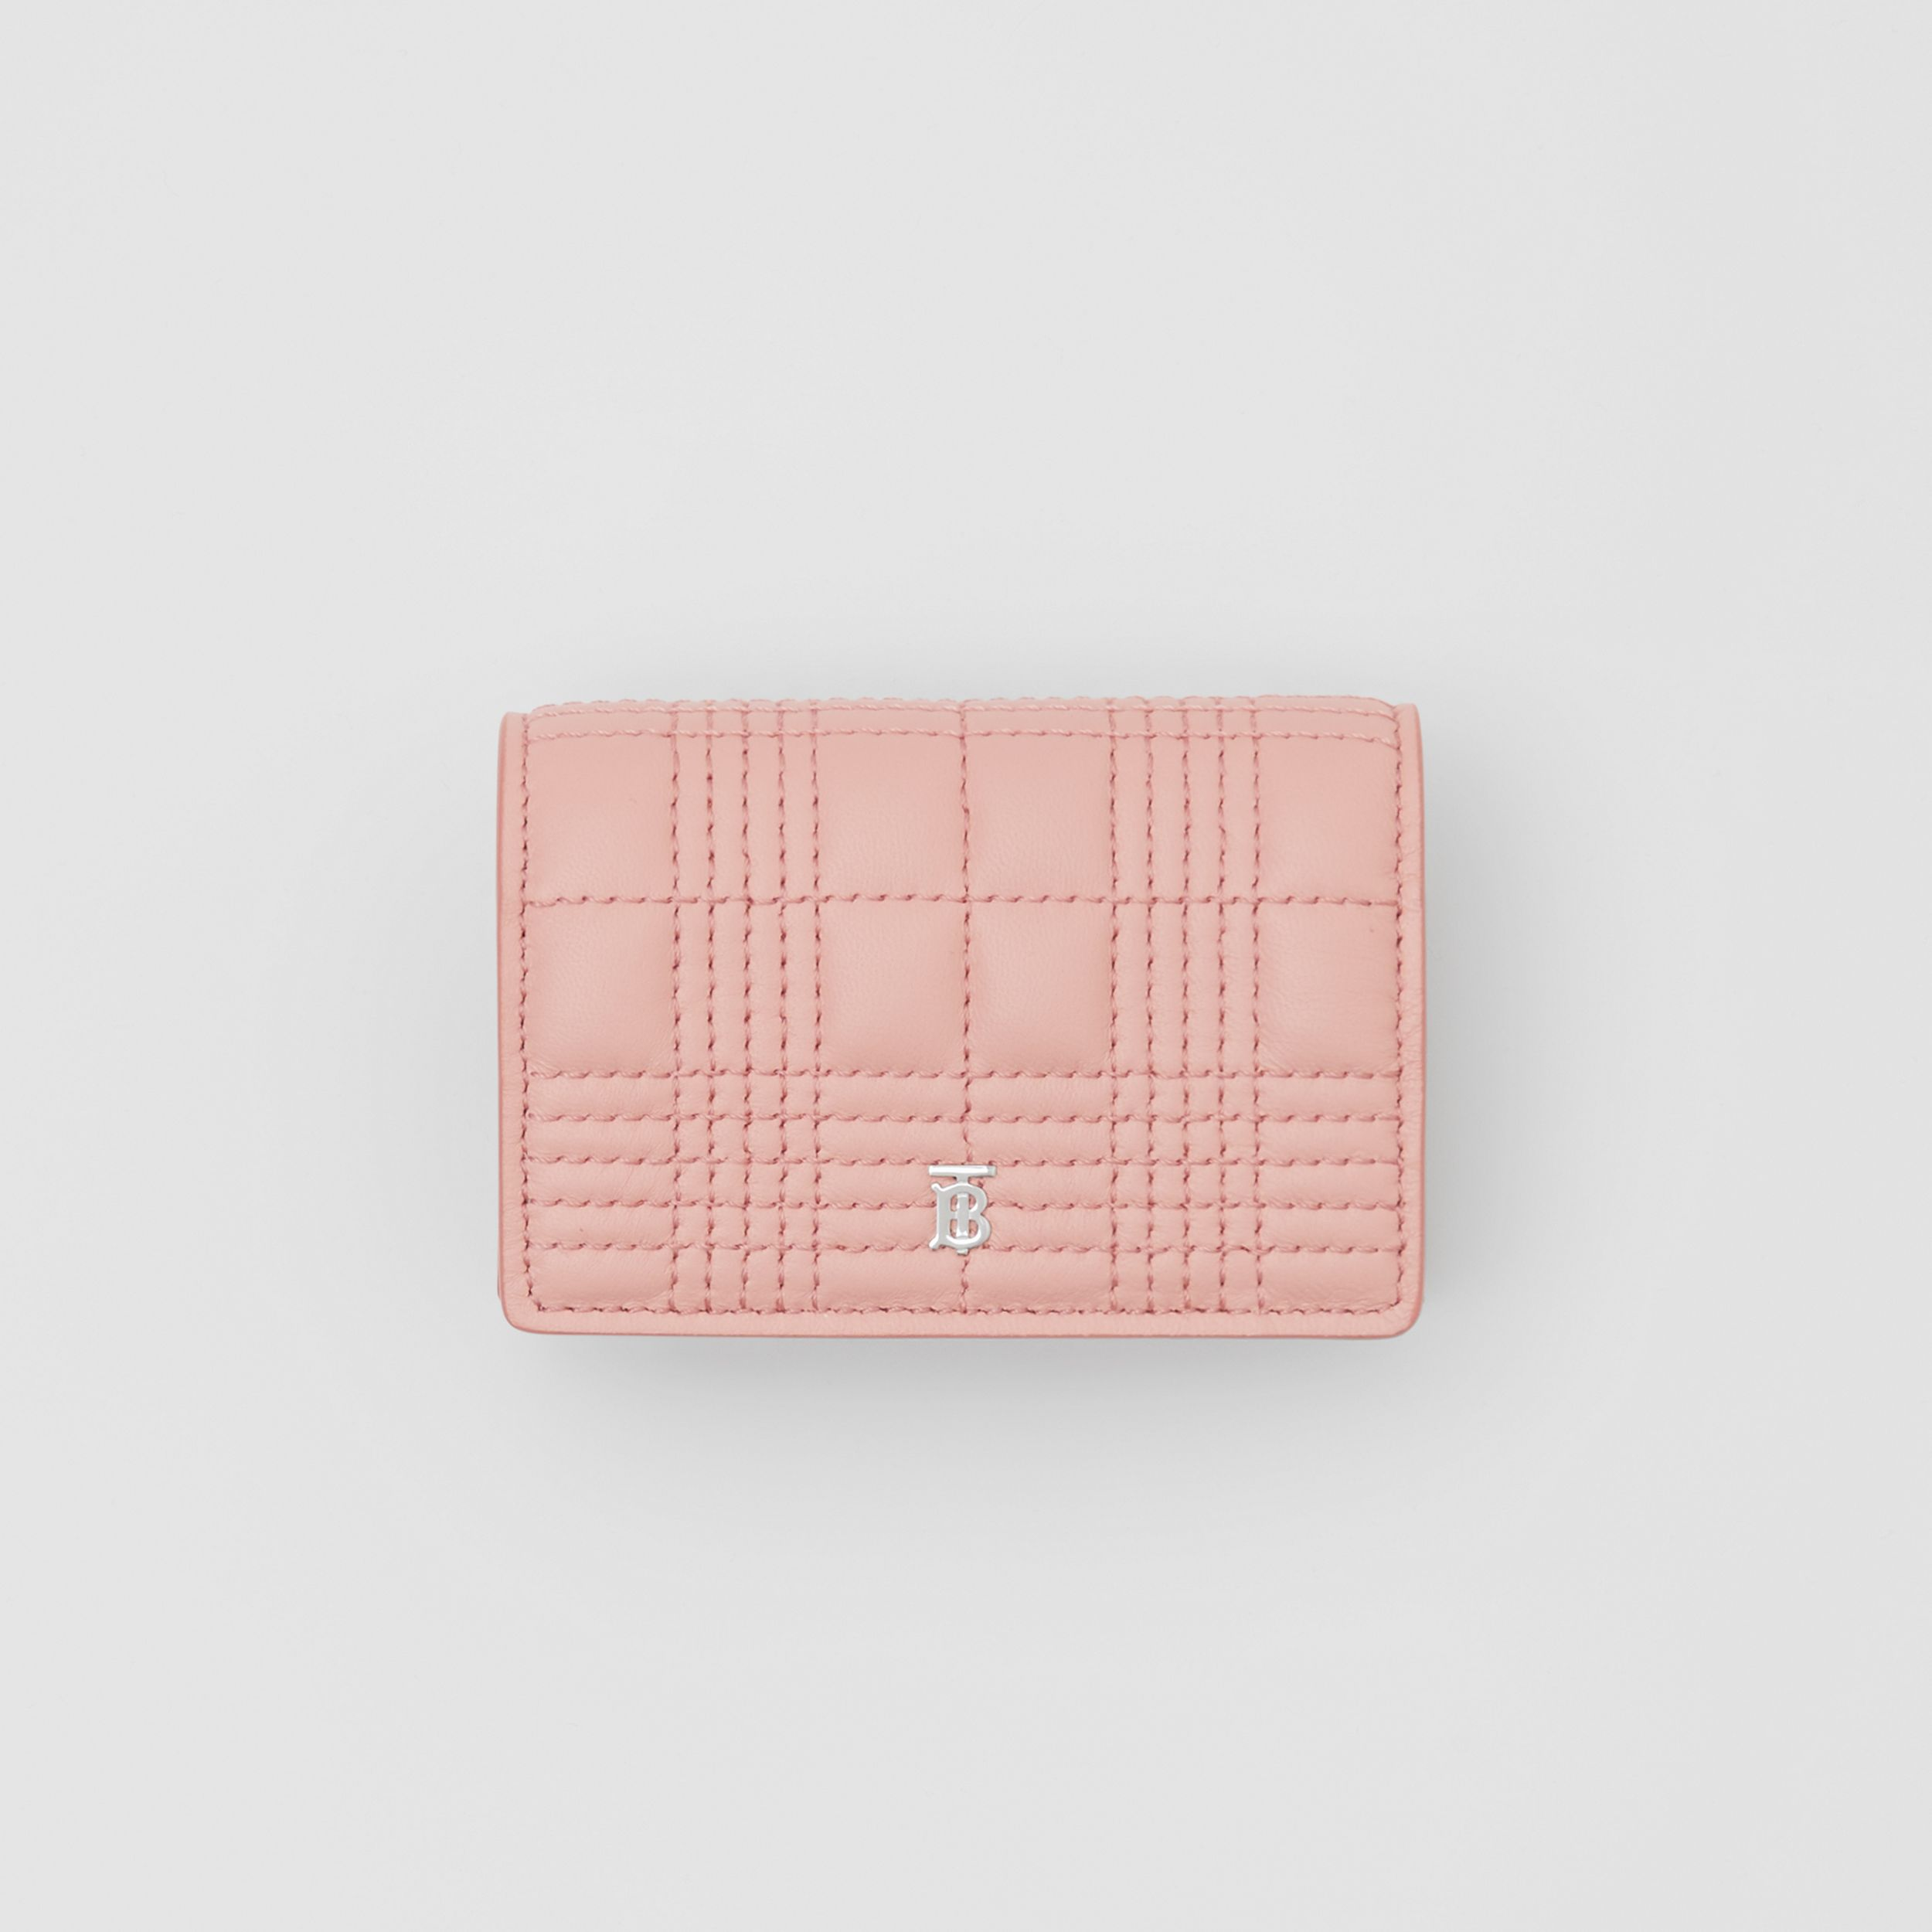 Quilted Lambskin Card Case with Detachable Strap in Blush Pink | Burberry - 4